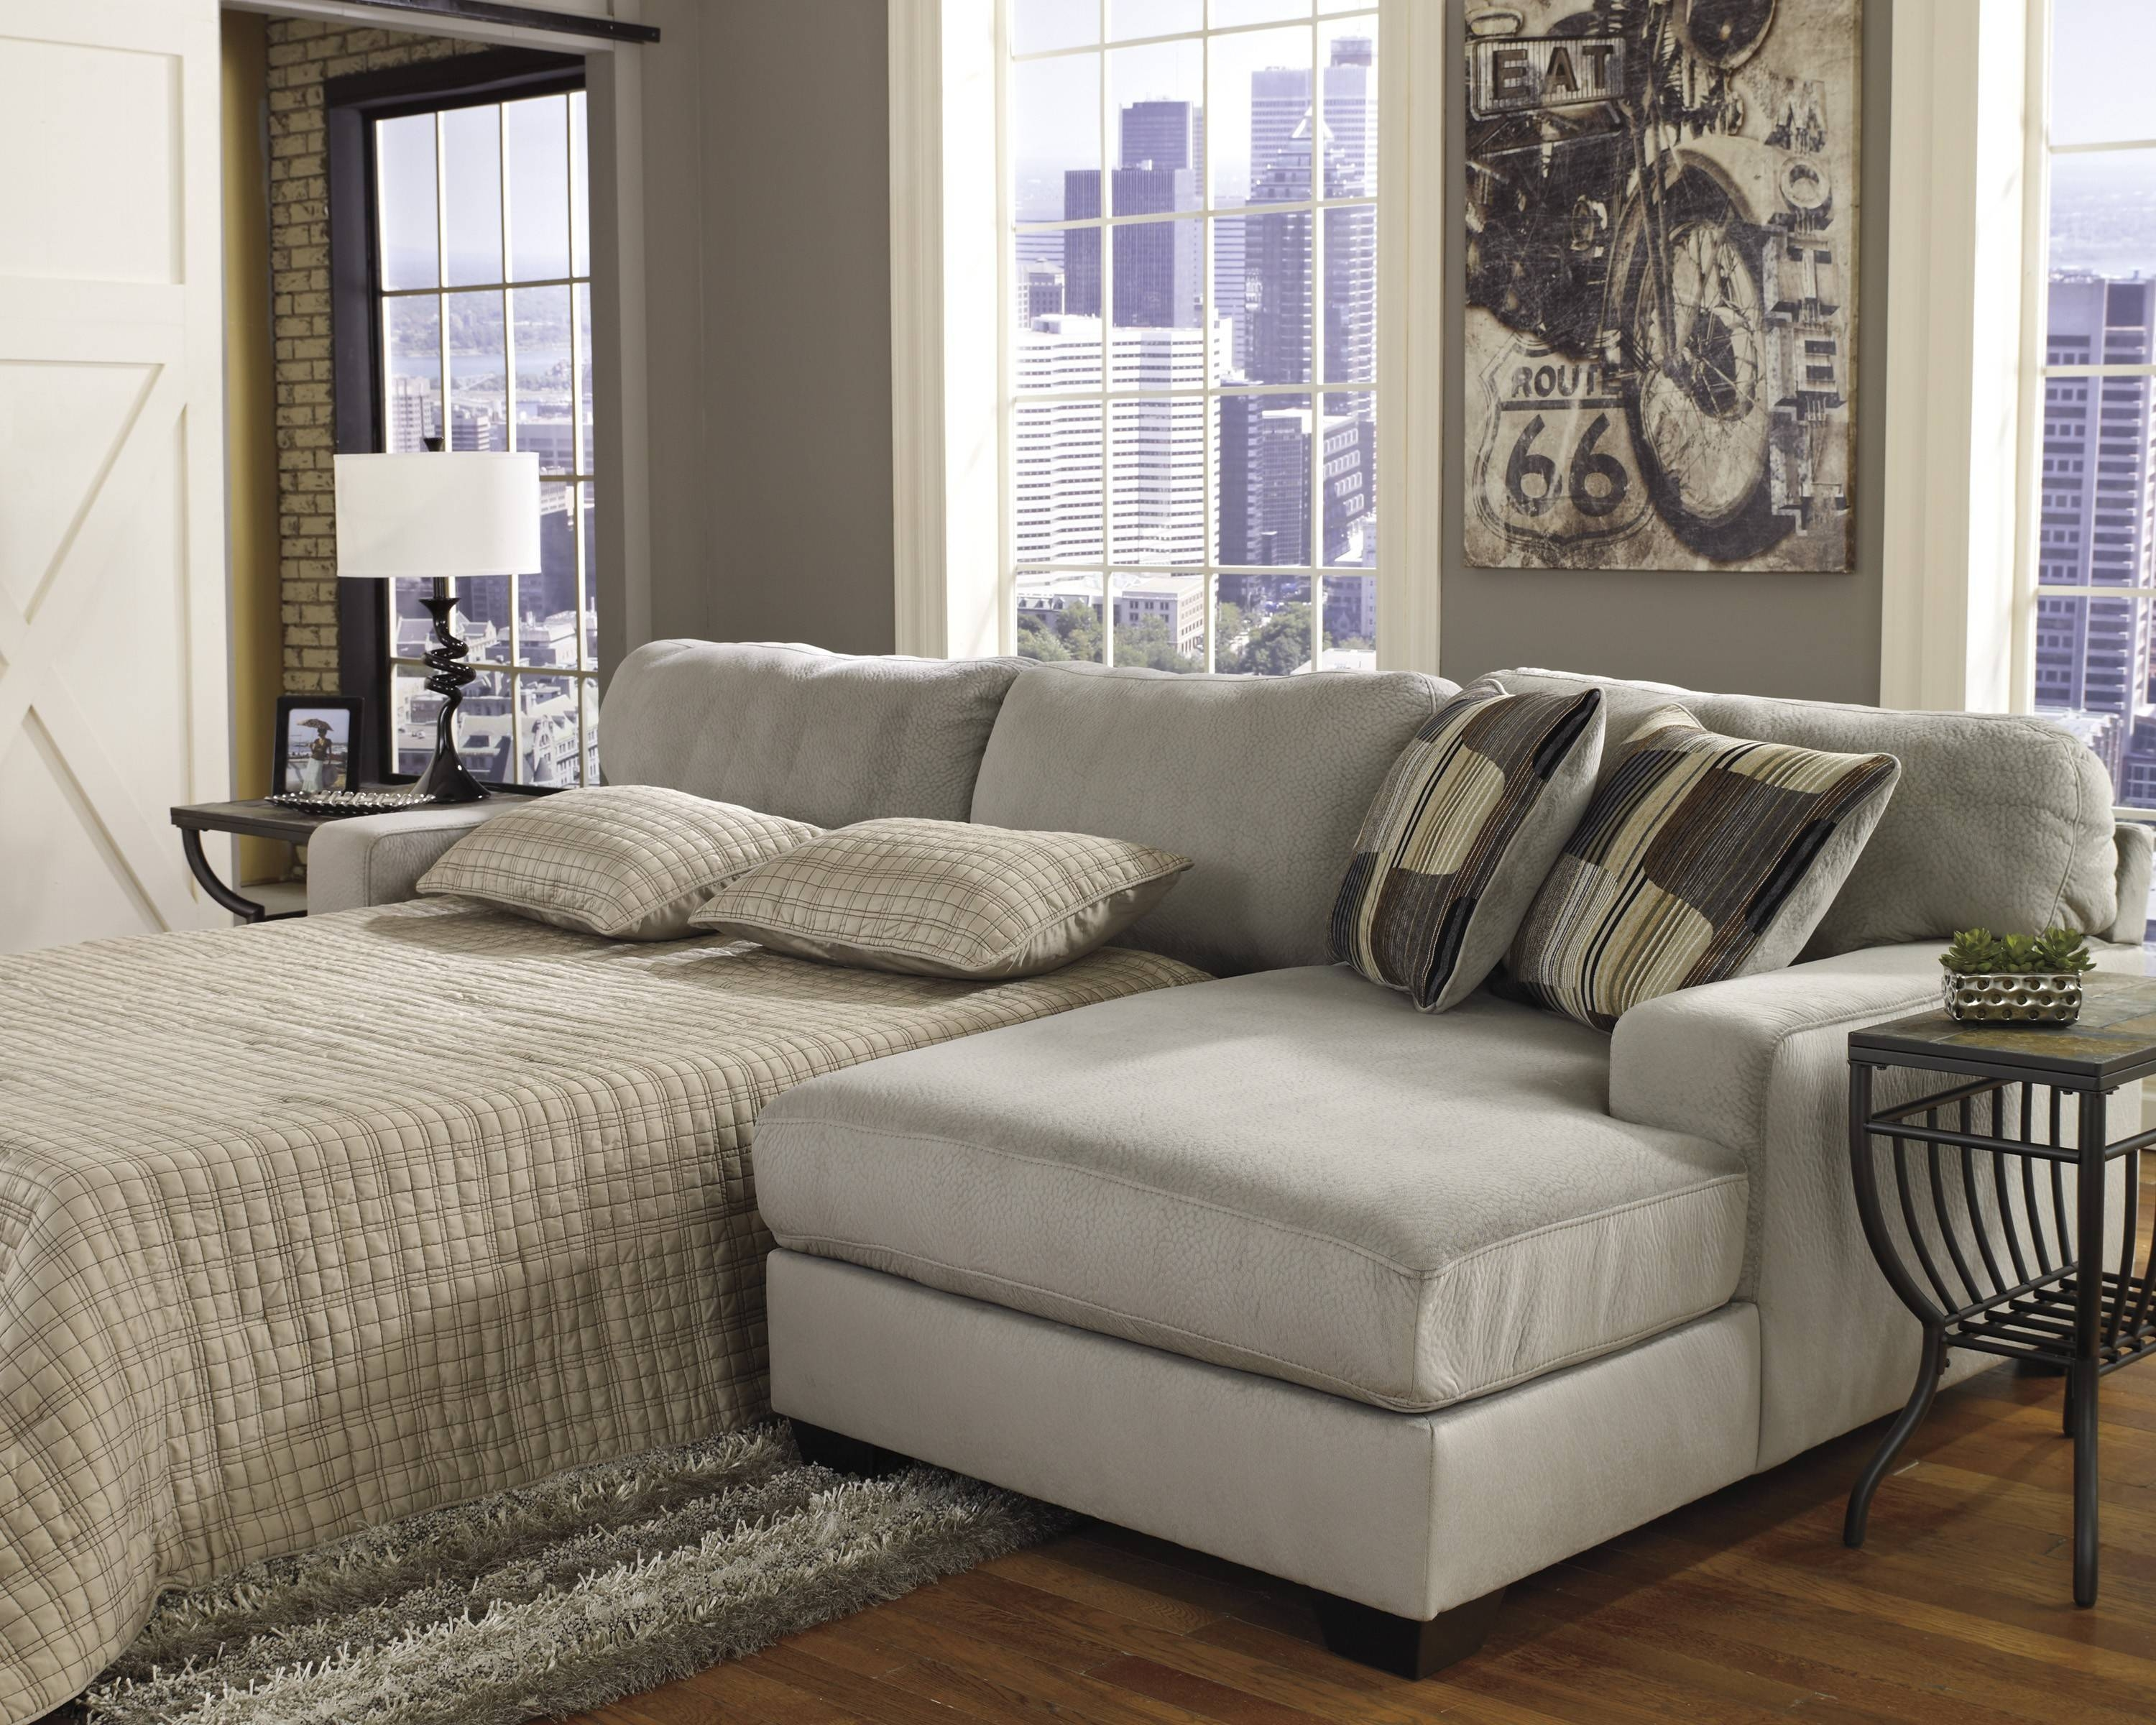 Sectional Sleeper Sofas On Sale   Tourdecarroll With Kmart Sleeper Sofas  (Image 11 Of 15